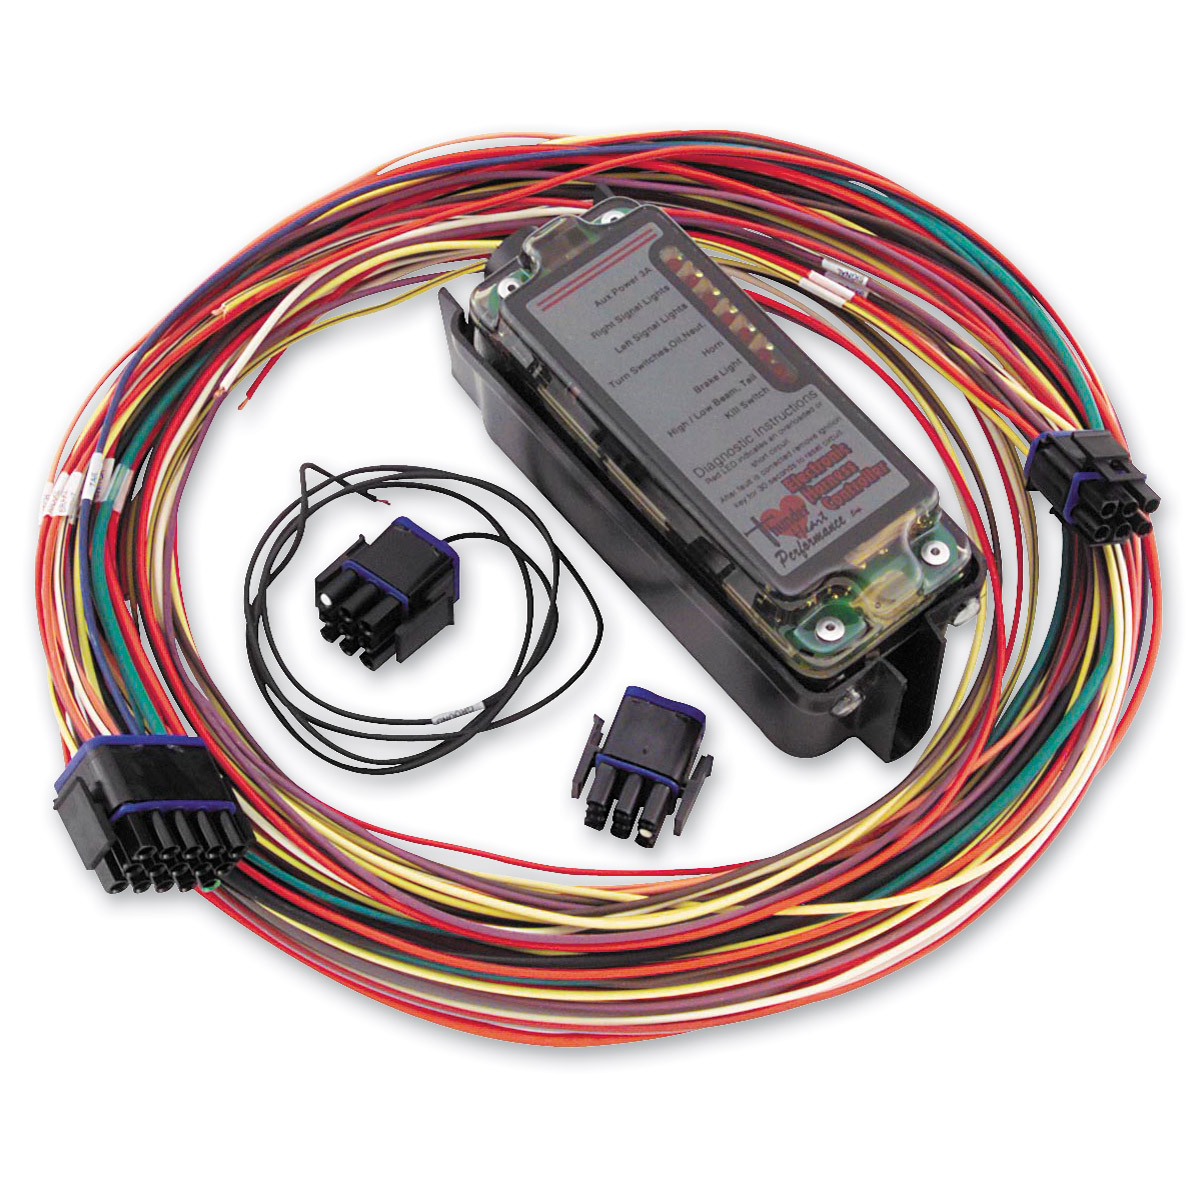 harley davidson sportster wiring harness kits j p cycles thunder heart performance complete electronic harness controller